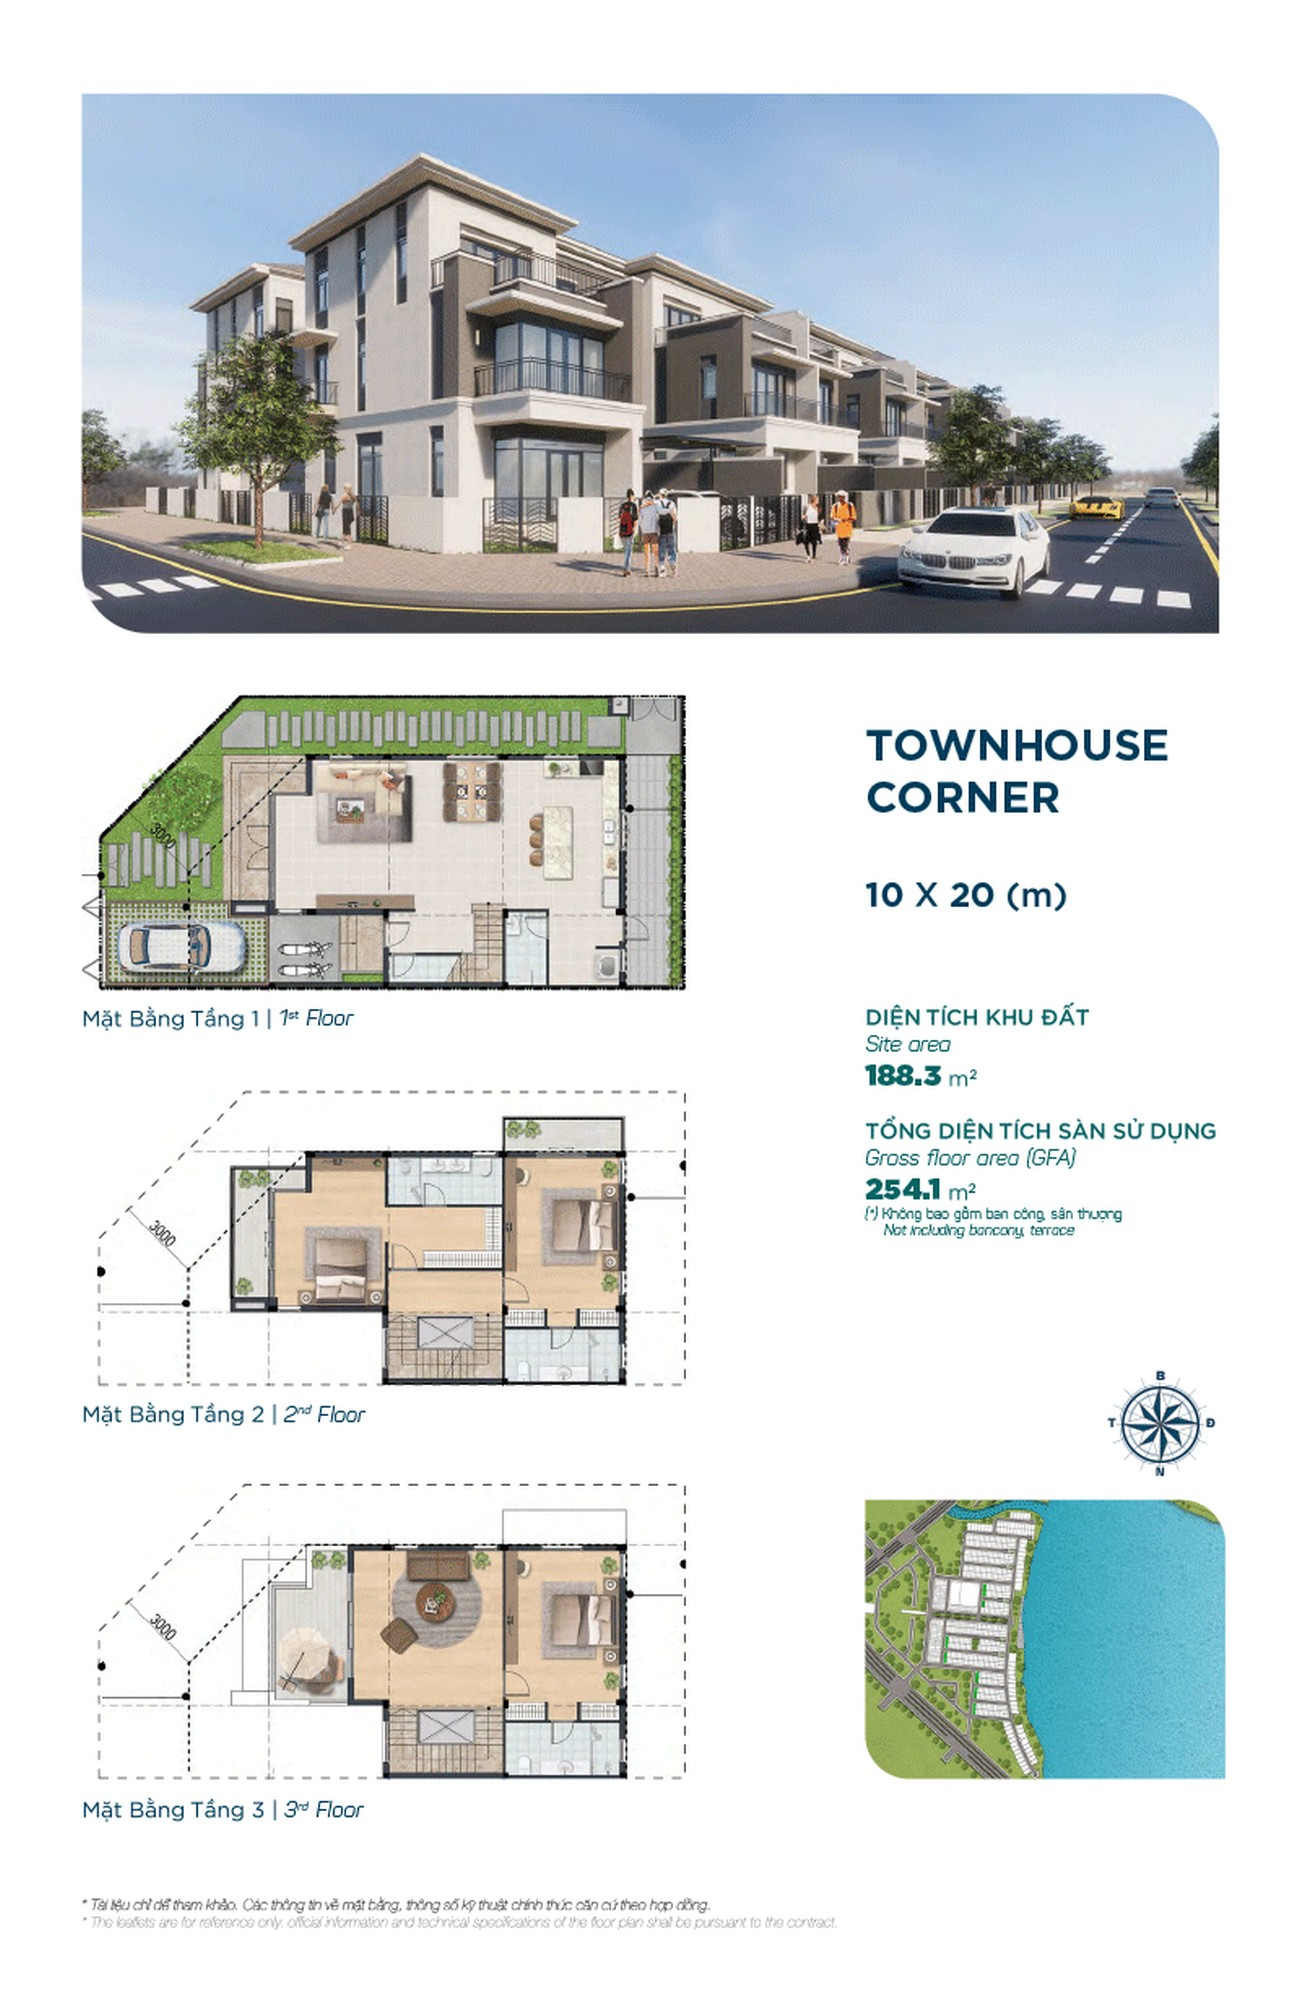 Townhouse The Elite 10x20m ( căn góc ) - Dự án Aqua City The Elite